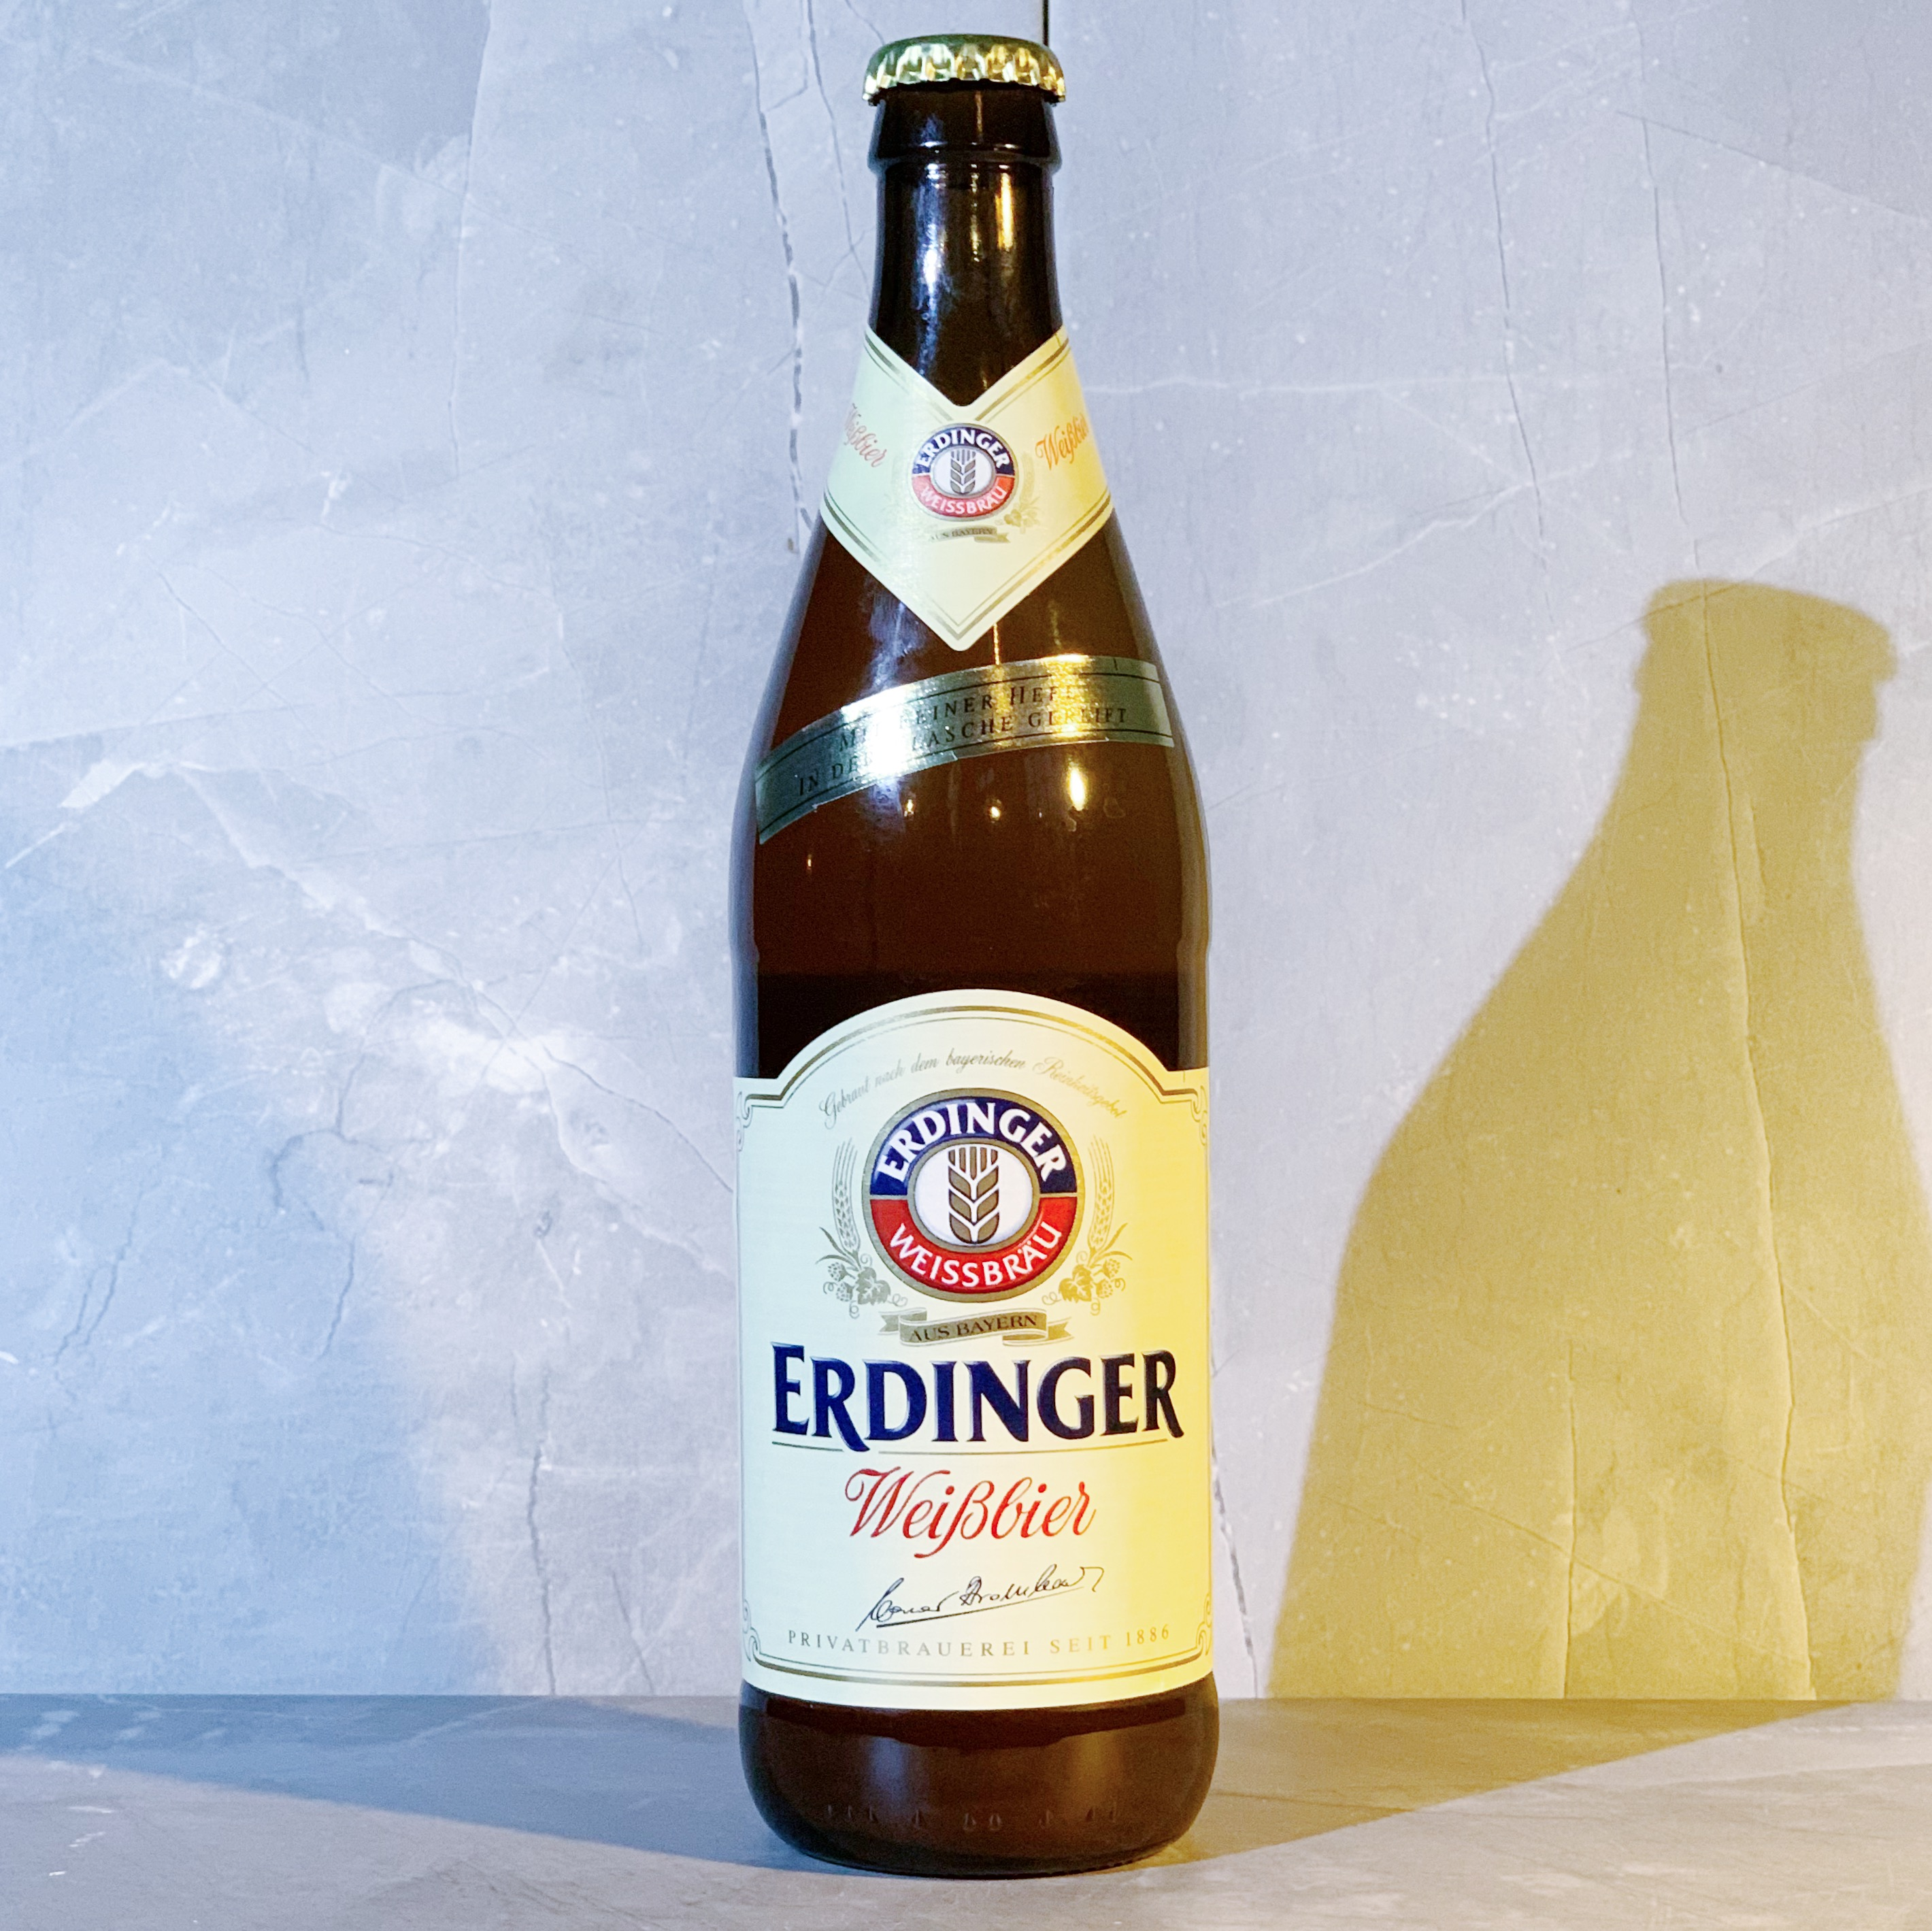 ERDINGER | WEISSBEIR | 5.3% ABV | 500ML | BULK BUY DISCOUNTS AVAILABLE